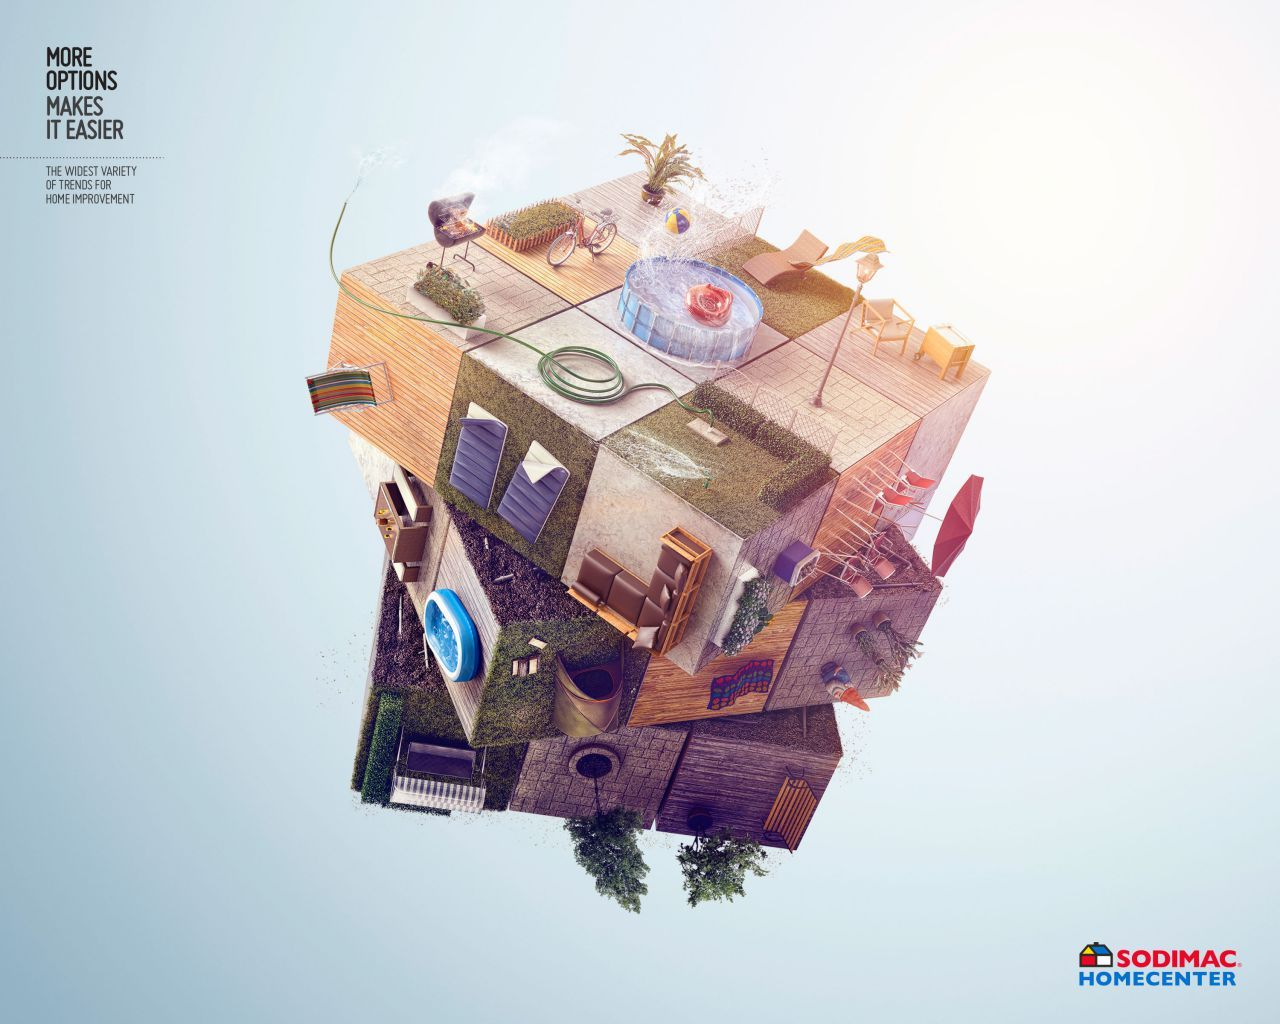 Creative use of Rubix Cube for this advertisement for home decoration